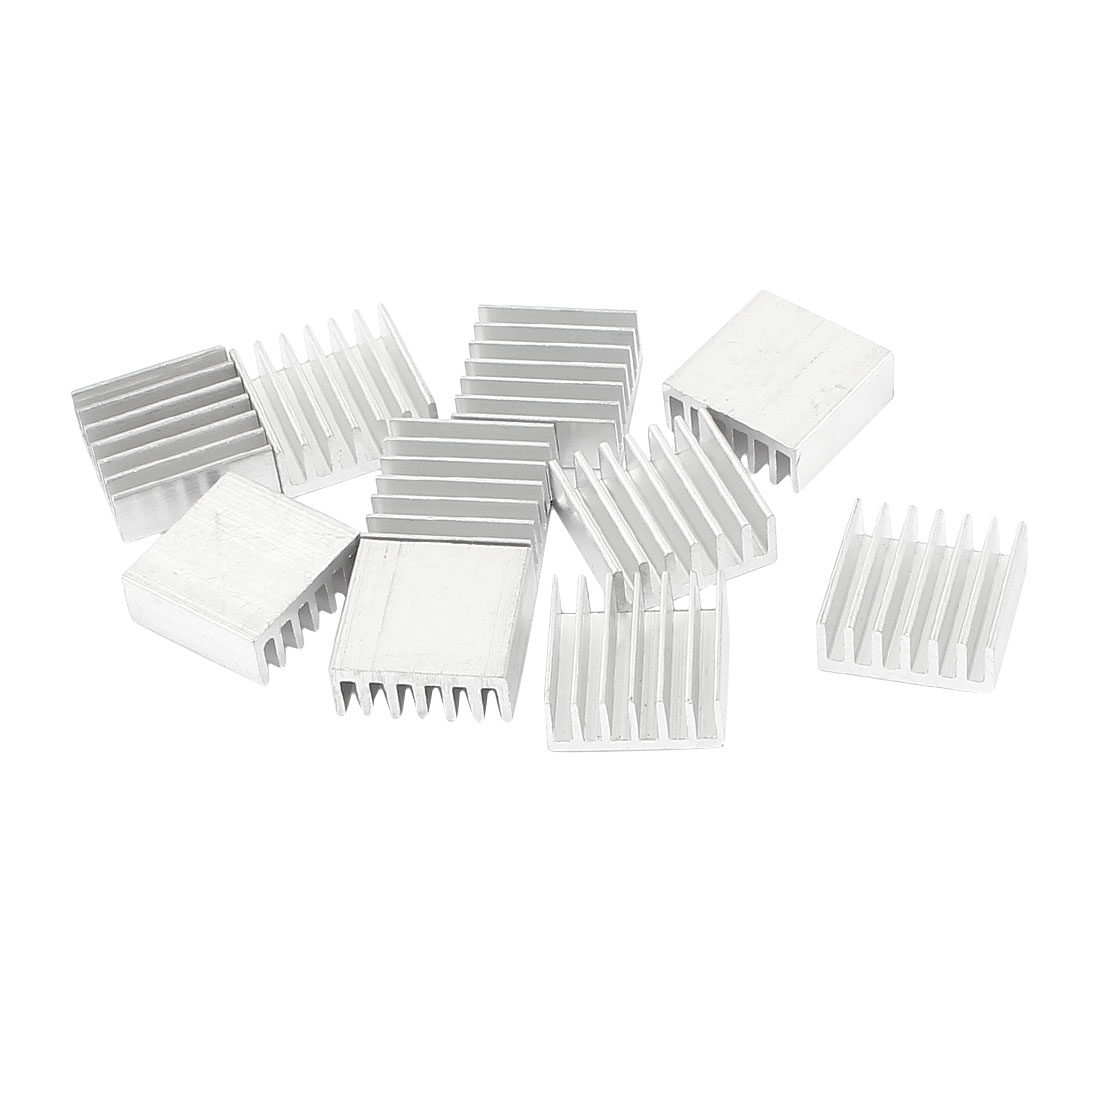 10 Pcs Silver Tone Aluminum Radiator Heat Sink Heatsink 14x14x6mm